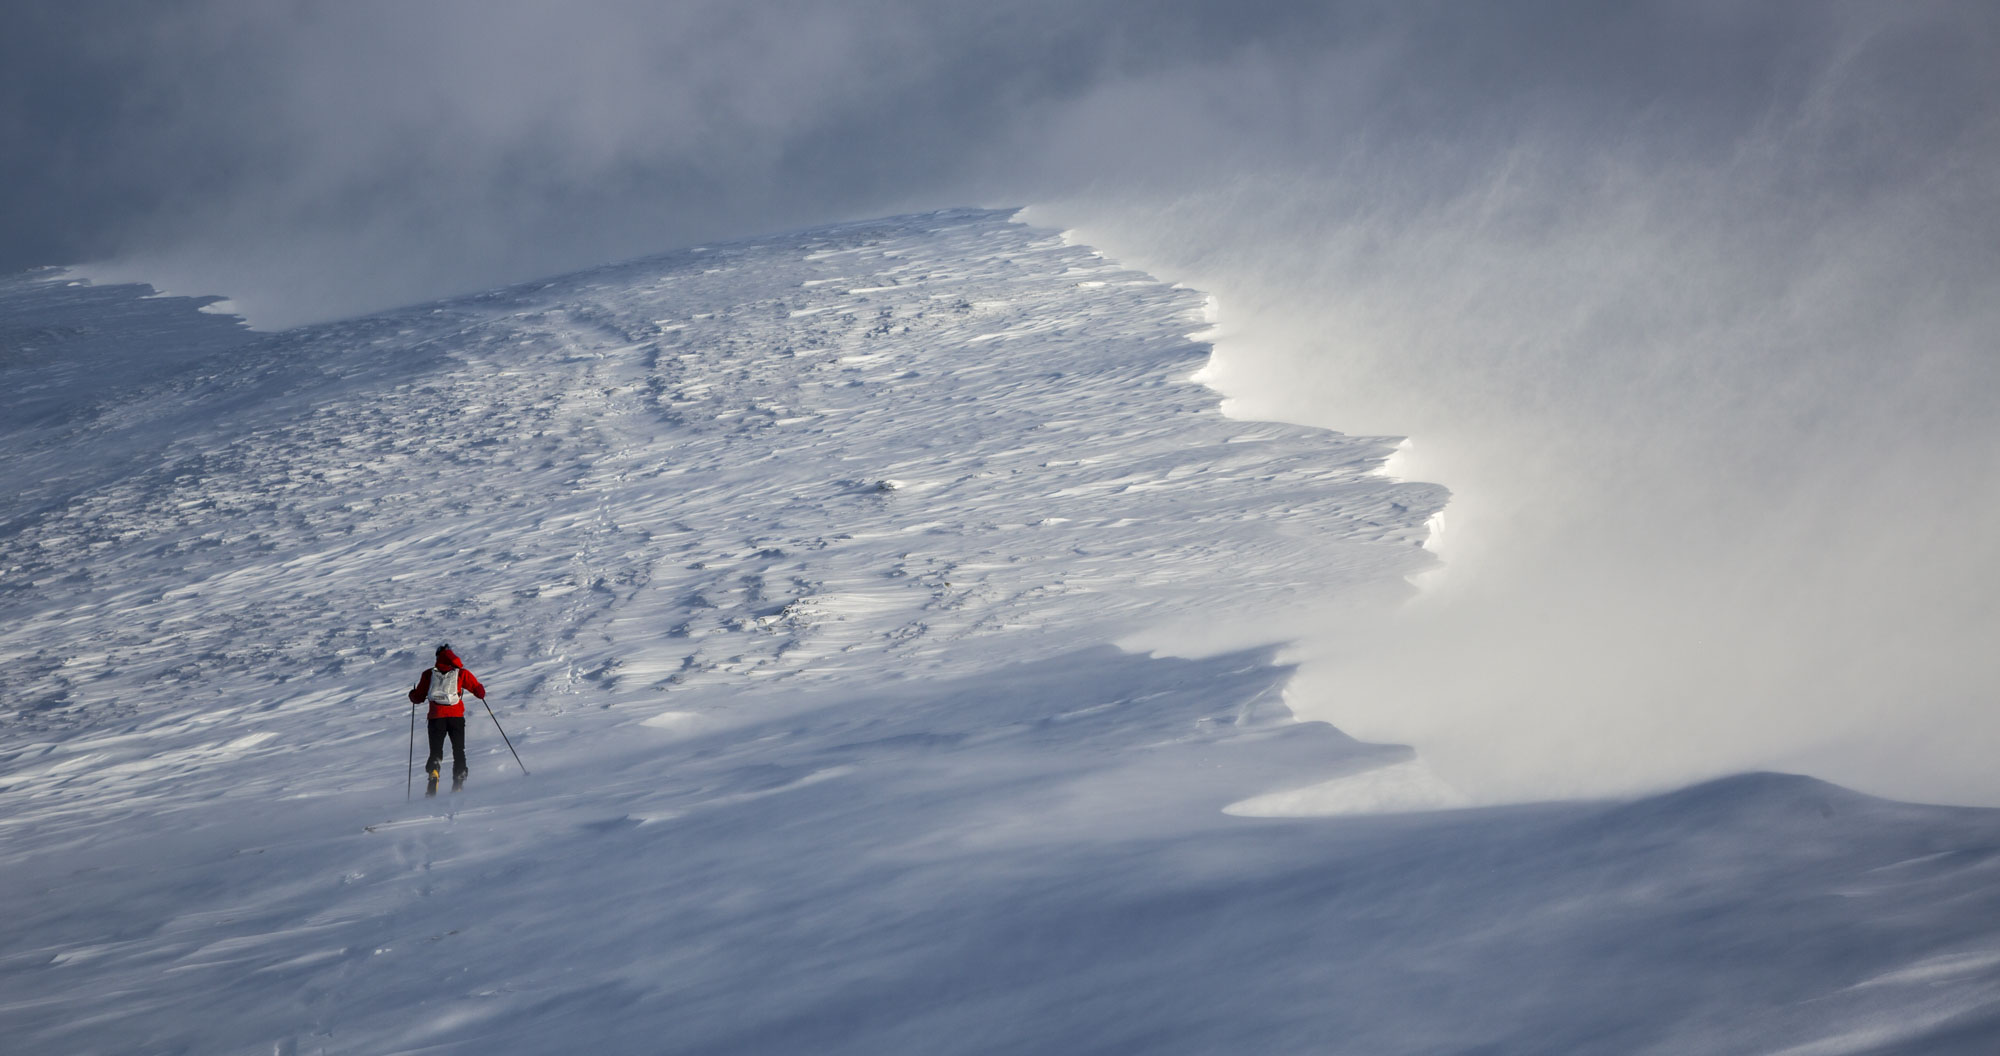 A skier braves windy conditions on top of Blencathra. Canon 5D MkIII, 24-105mm at 65mm, ISO 100, 1/640 sec at f/9, January. © Stuart Holmes.